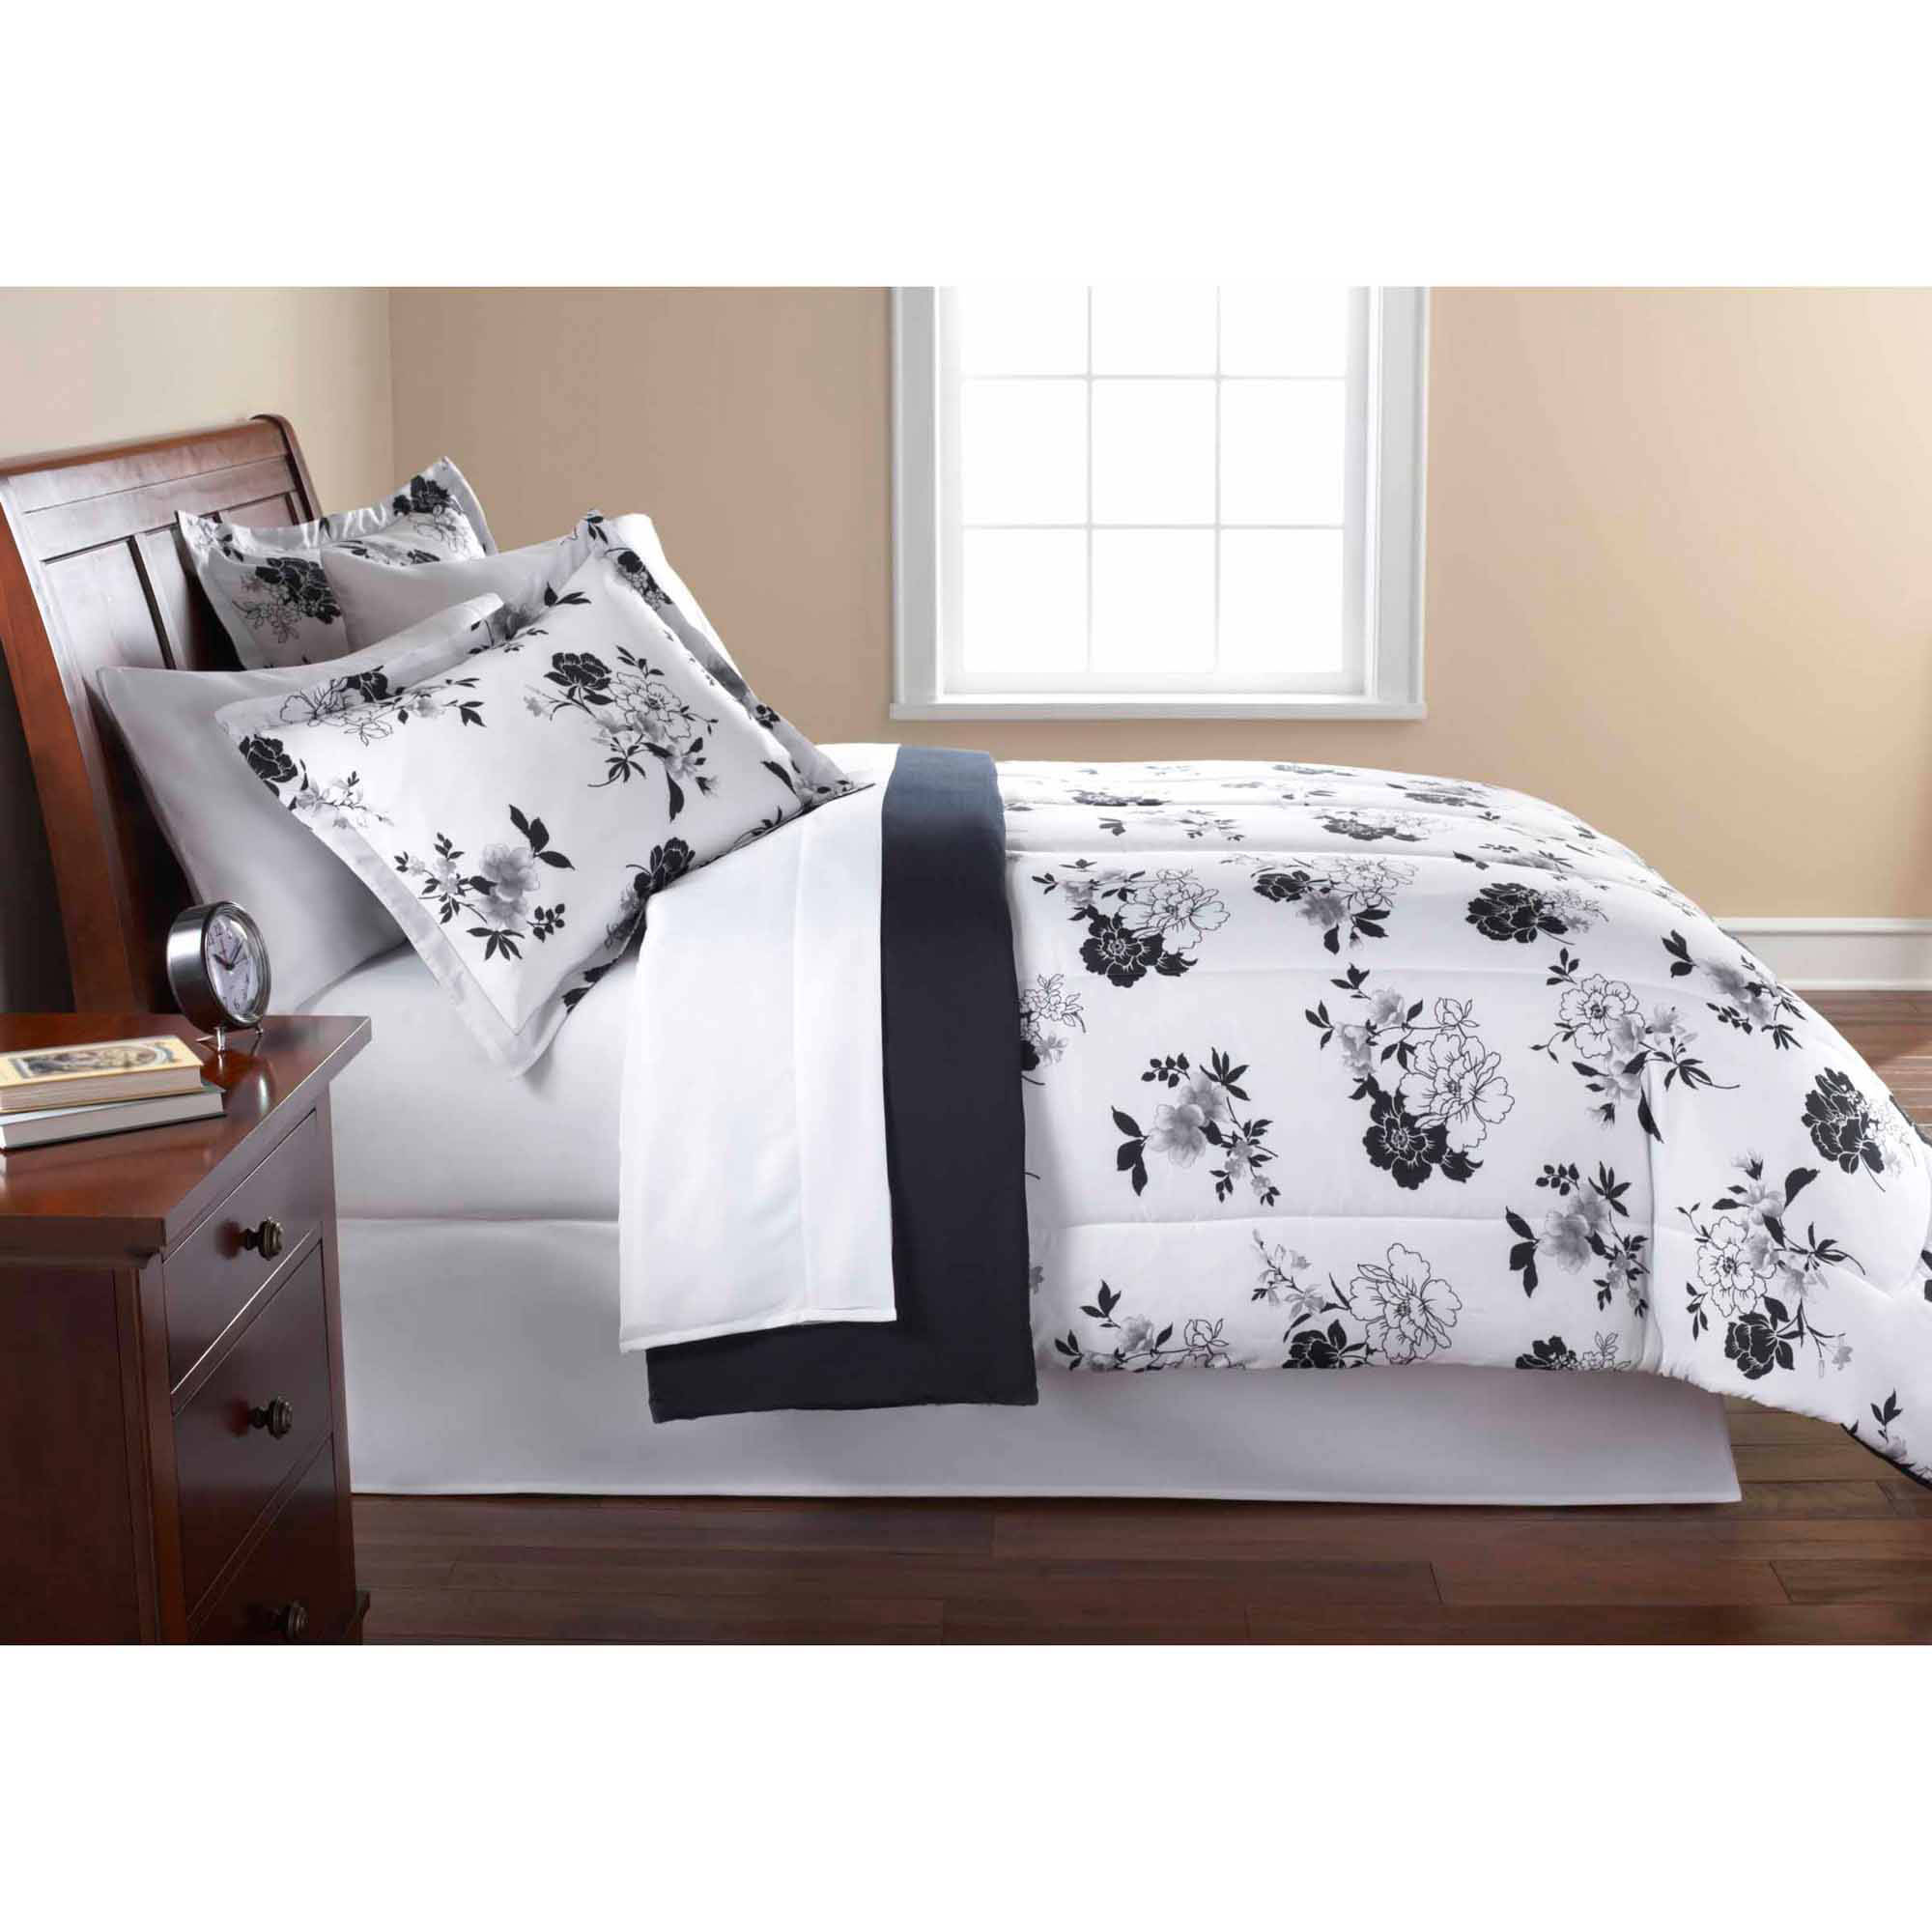 reversible bath piece comforter comforters white sets and black you wayfair set ll bed haliburton love